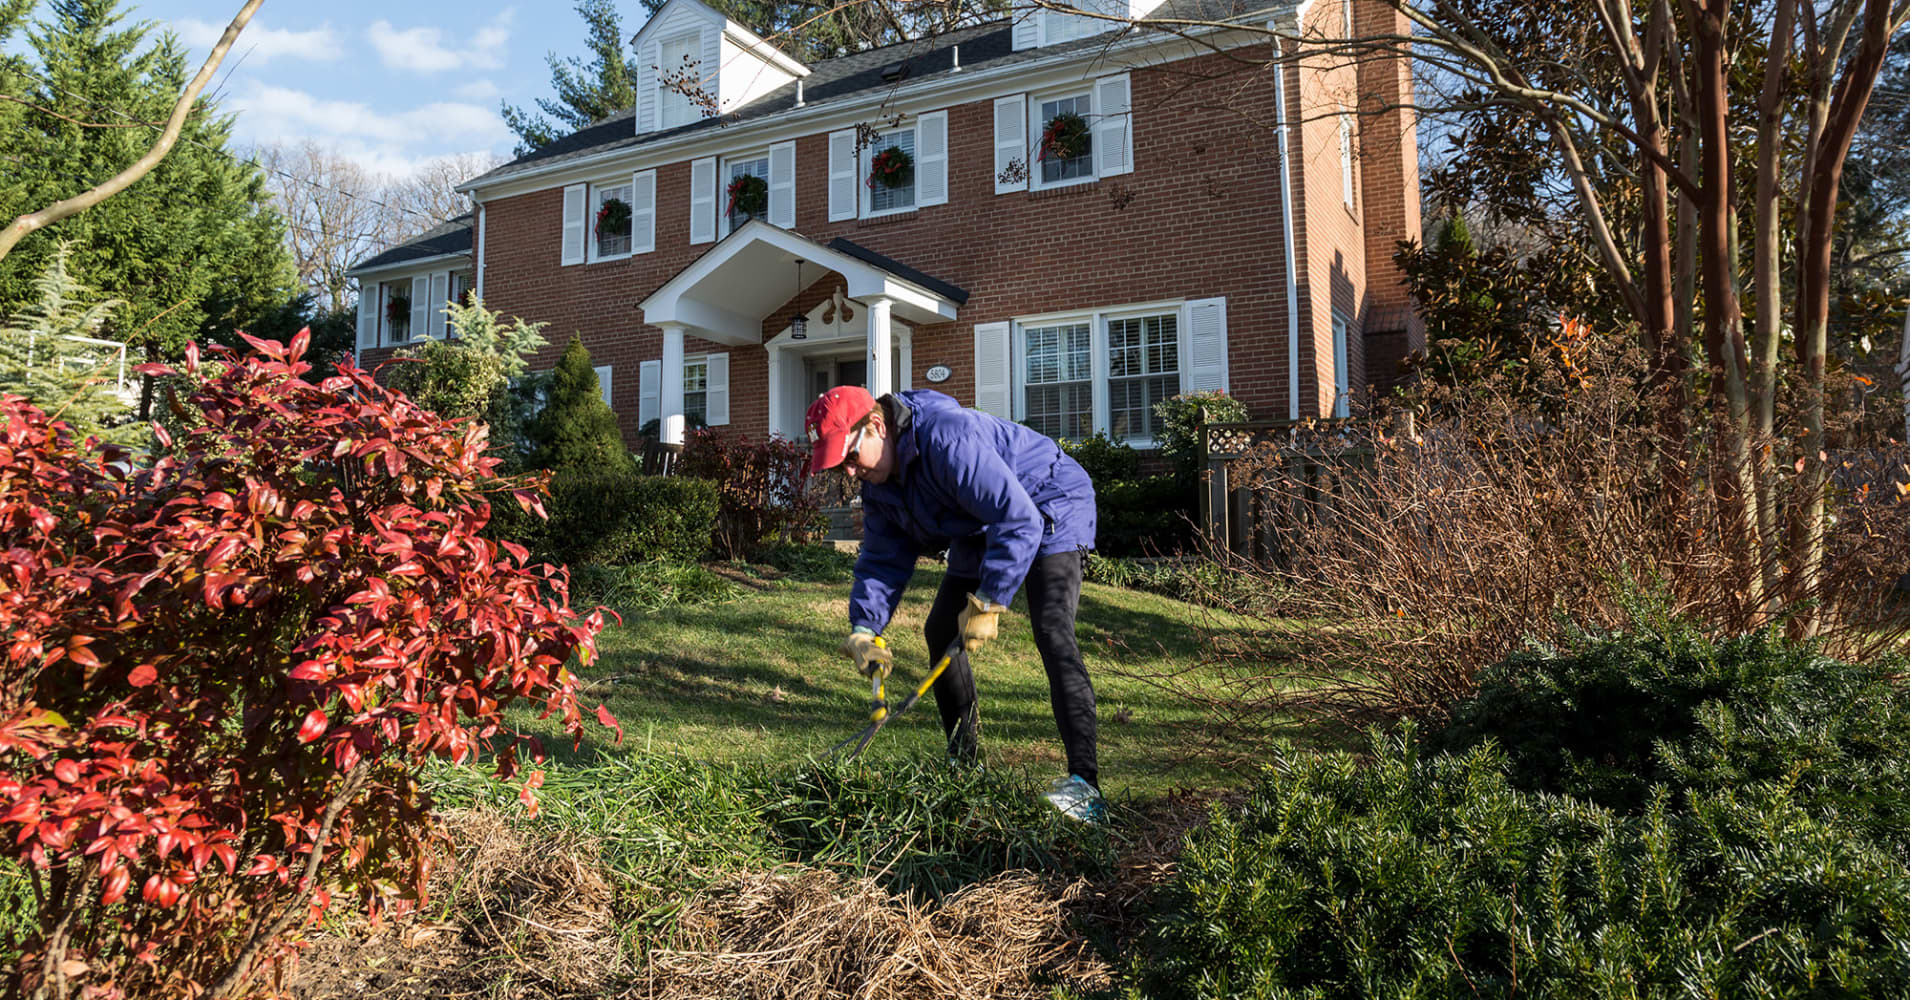 A homeowner trims her yard in the Kenwood Park neighborhood of Bethesda, Md.